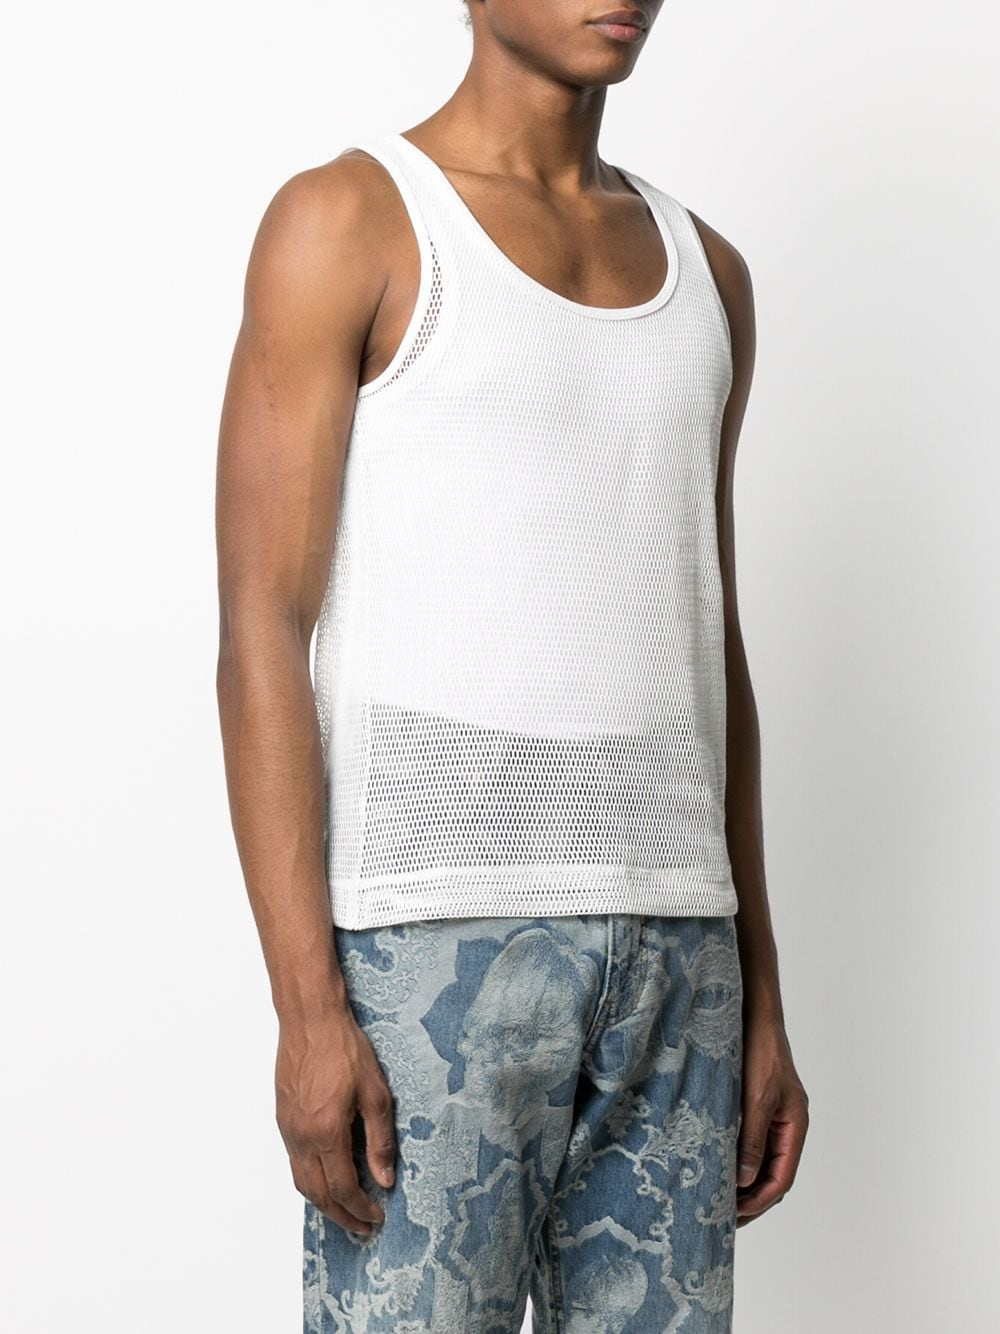 NET COTTON TANK TOP DRIES VAN NOTEN | T-shirts | HALK2616WHITE